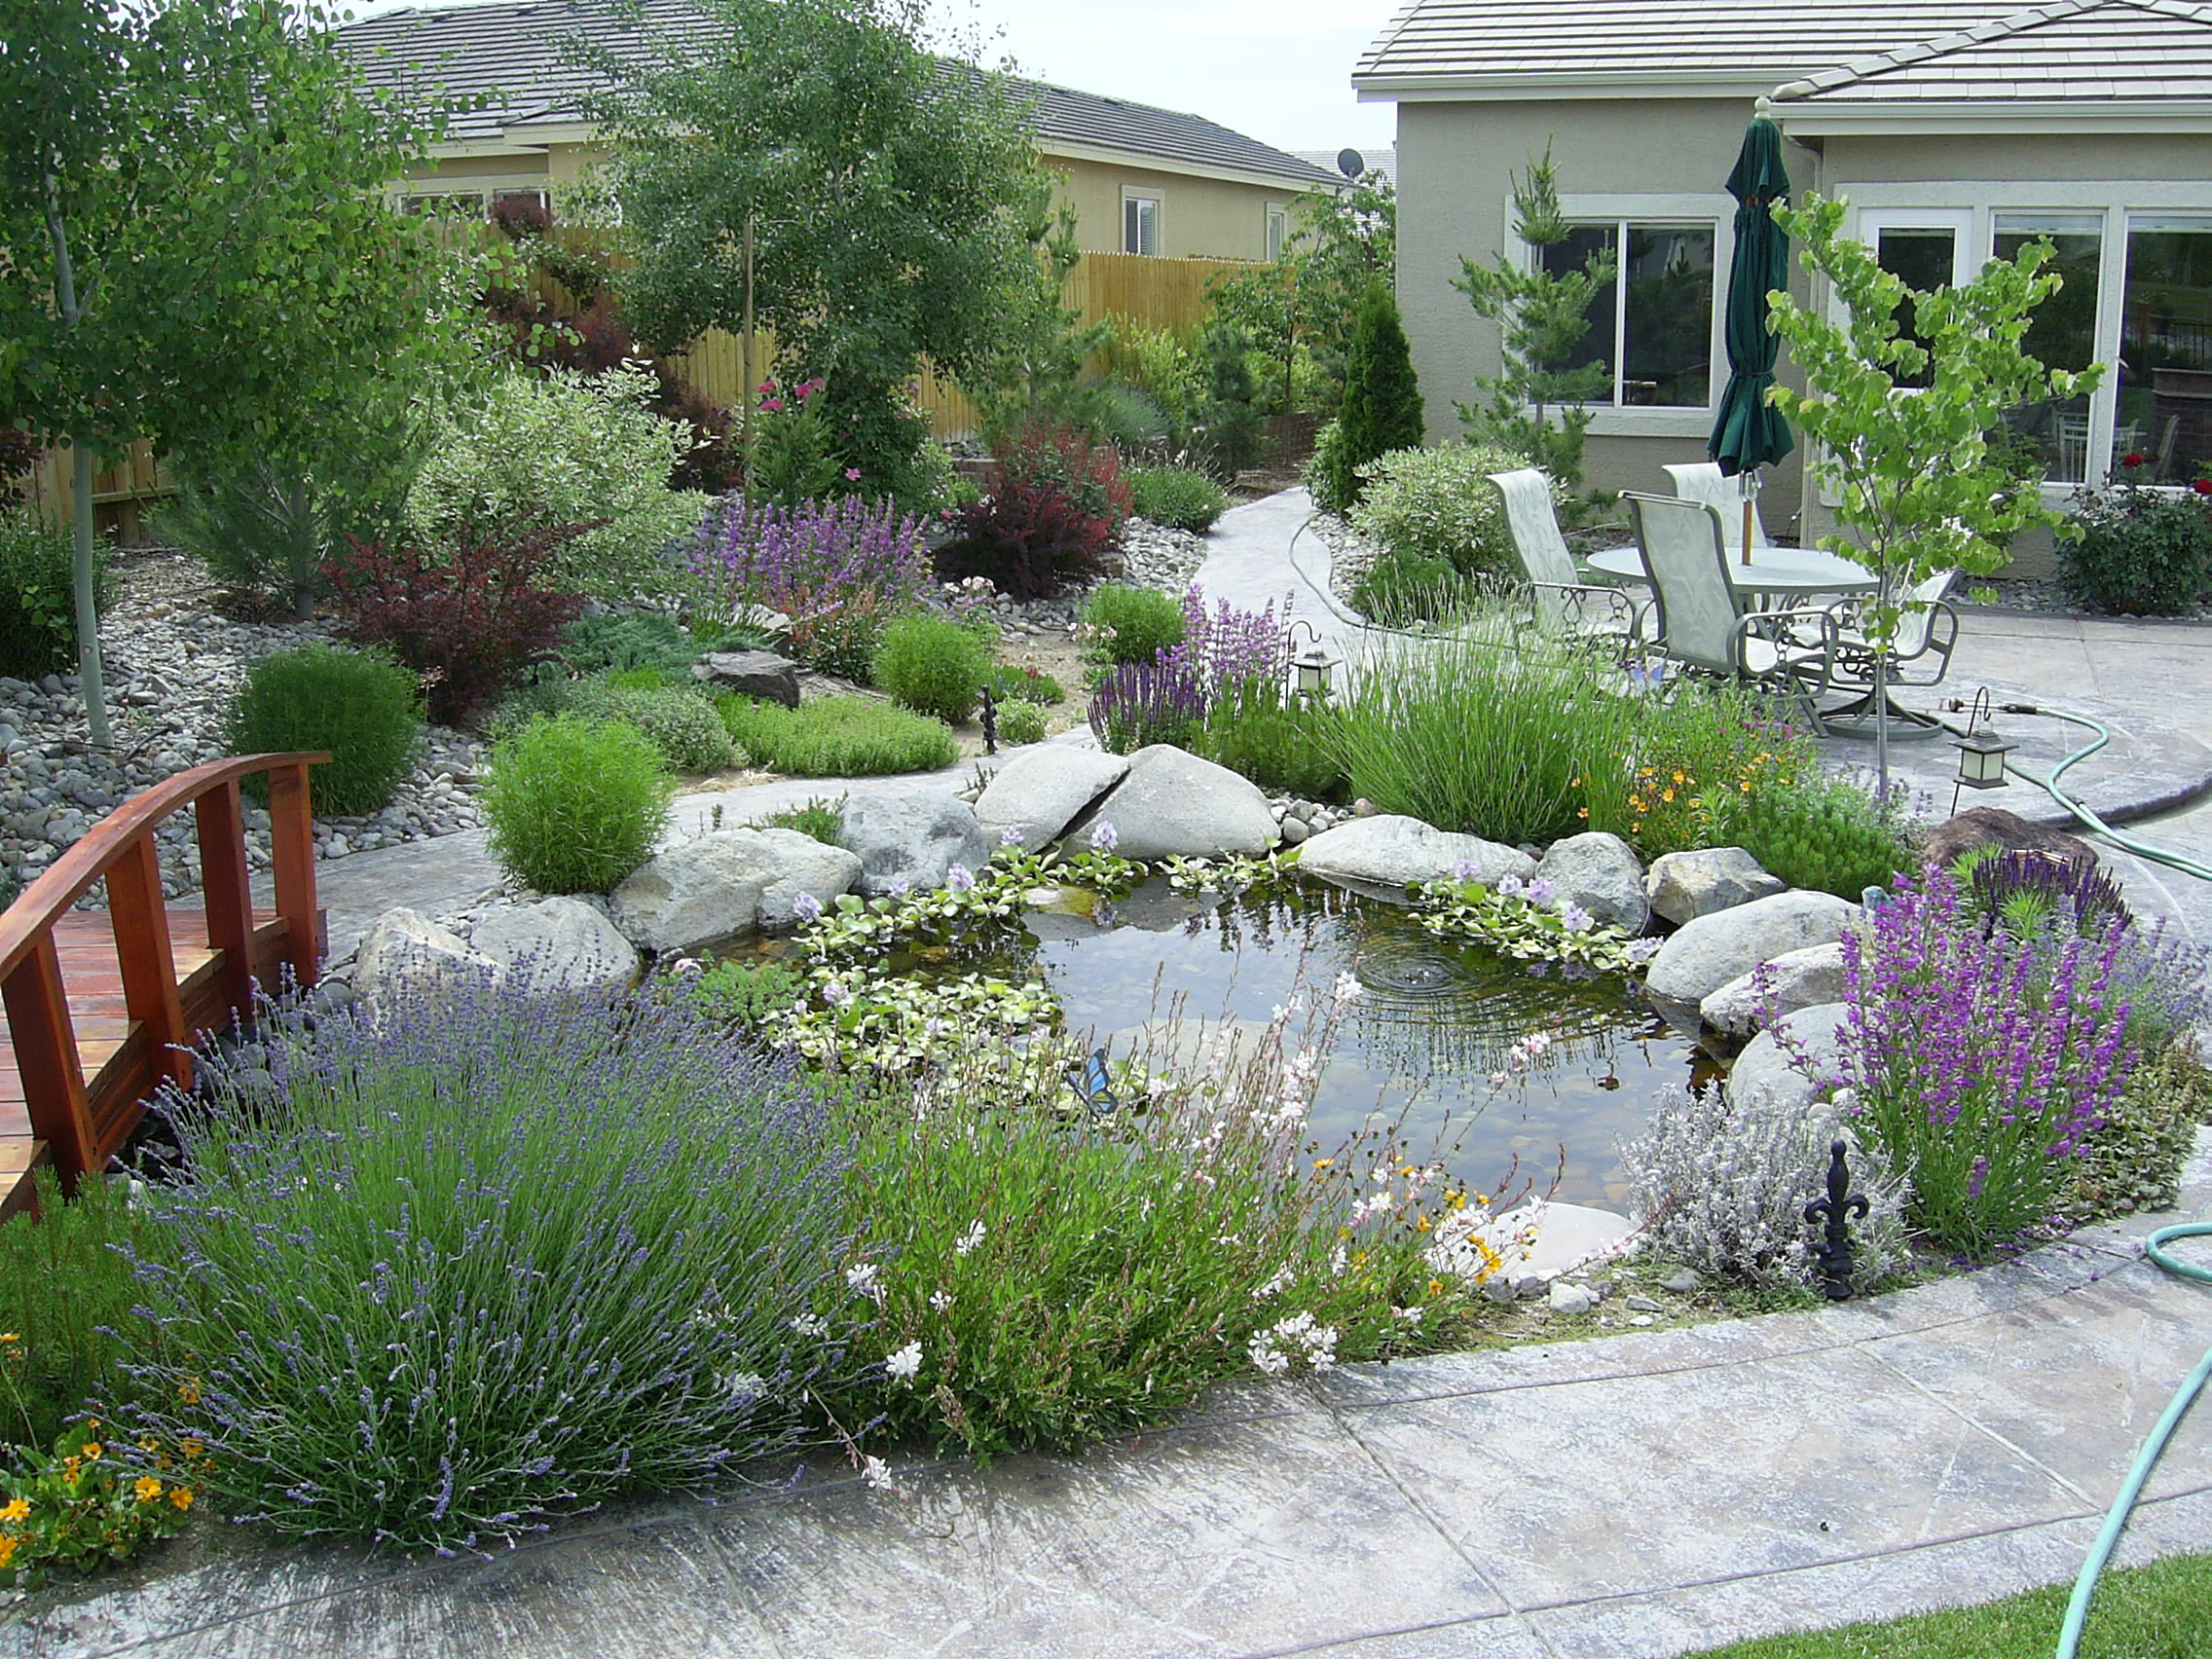 Landscape and garden design implications of water for Water landscape design